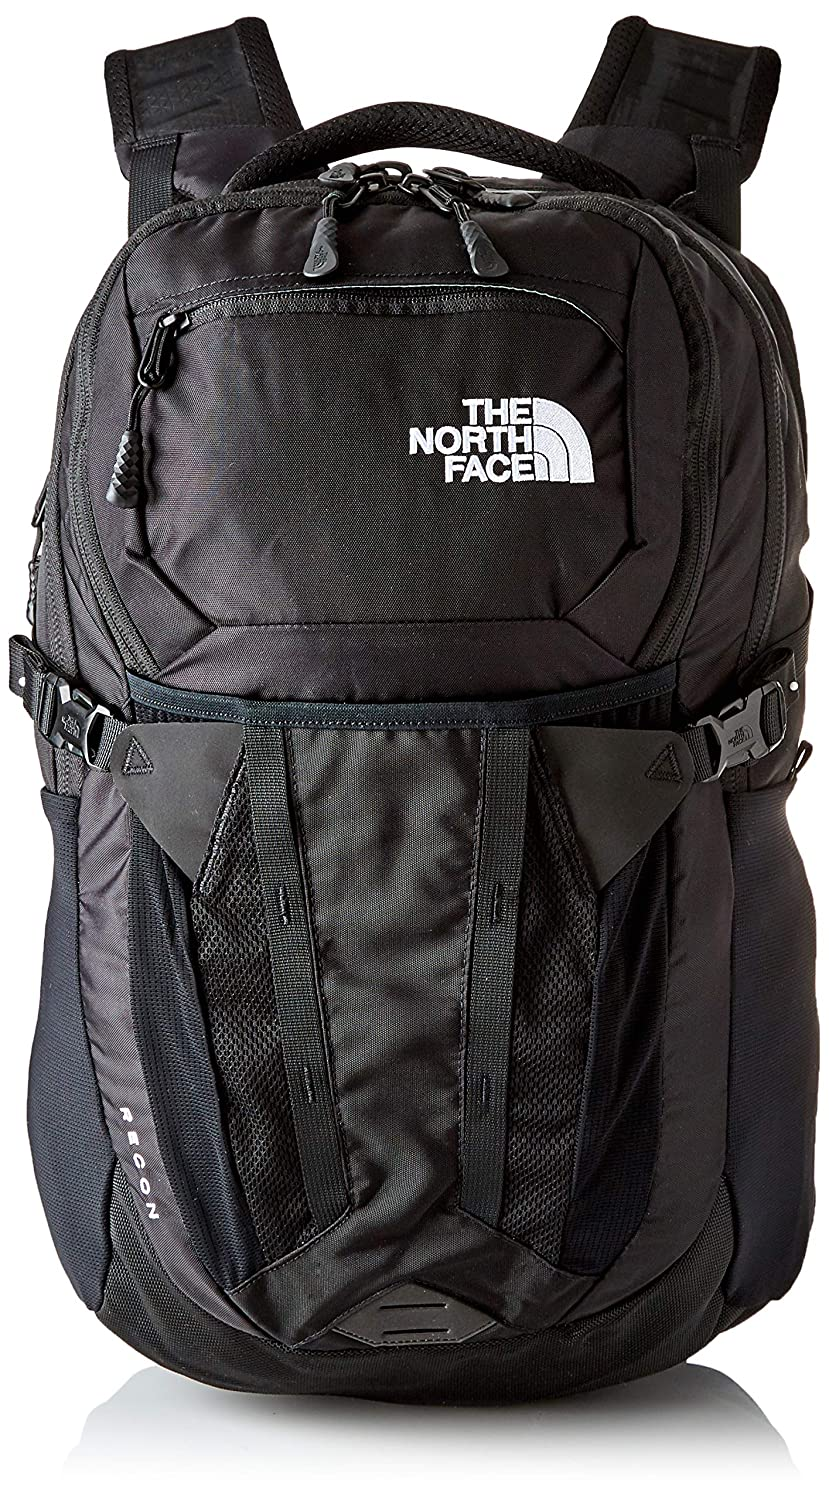 North Face Recon Backpack Black Friday Deals 2021